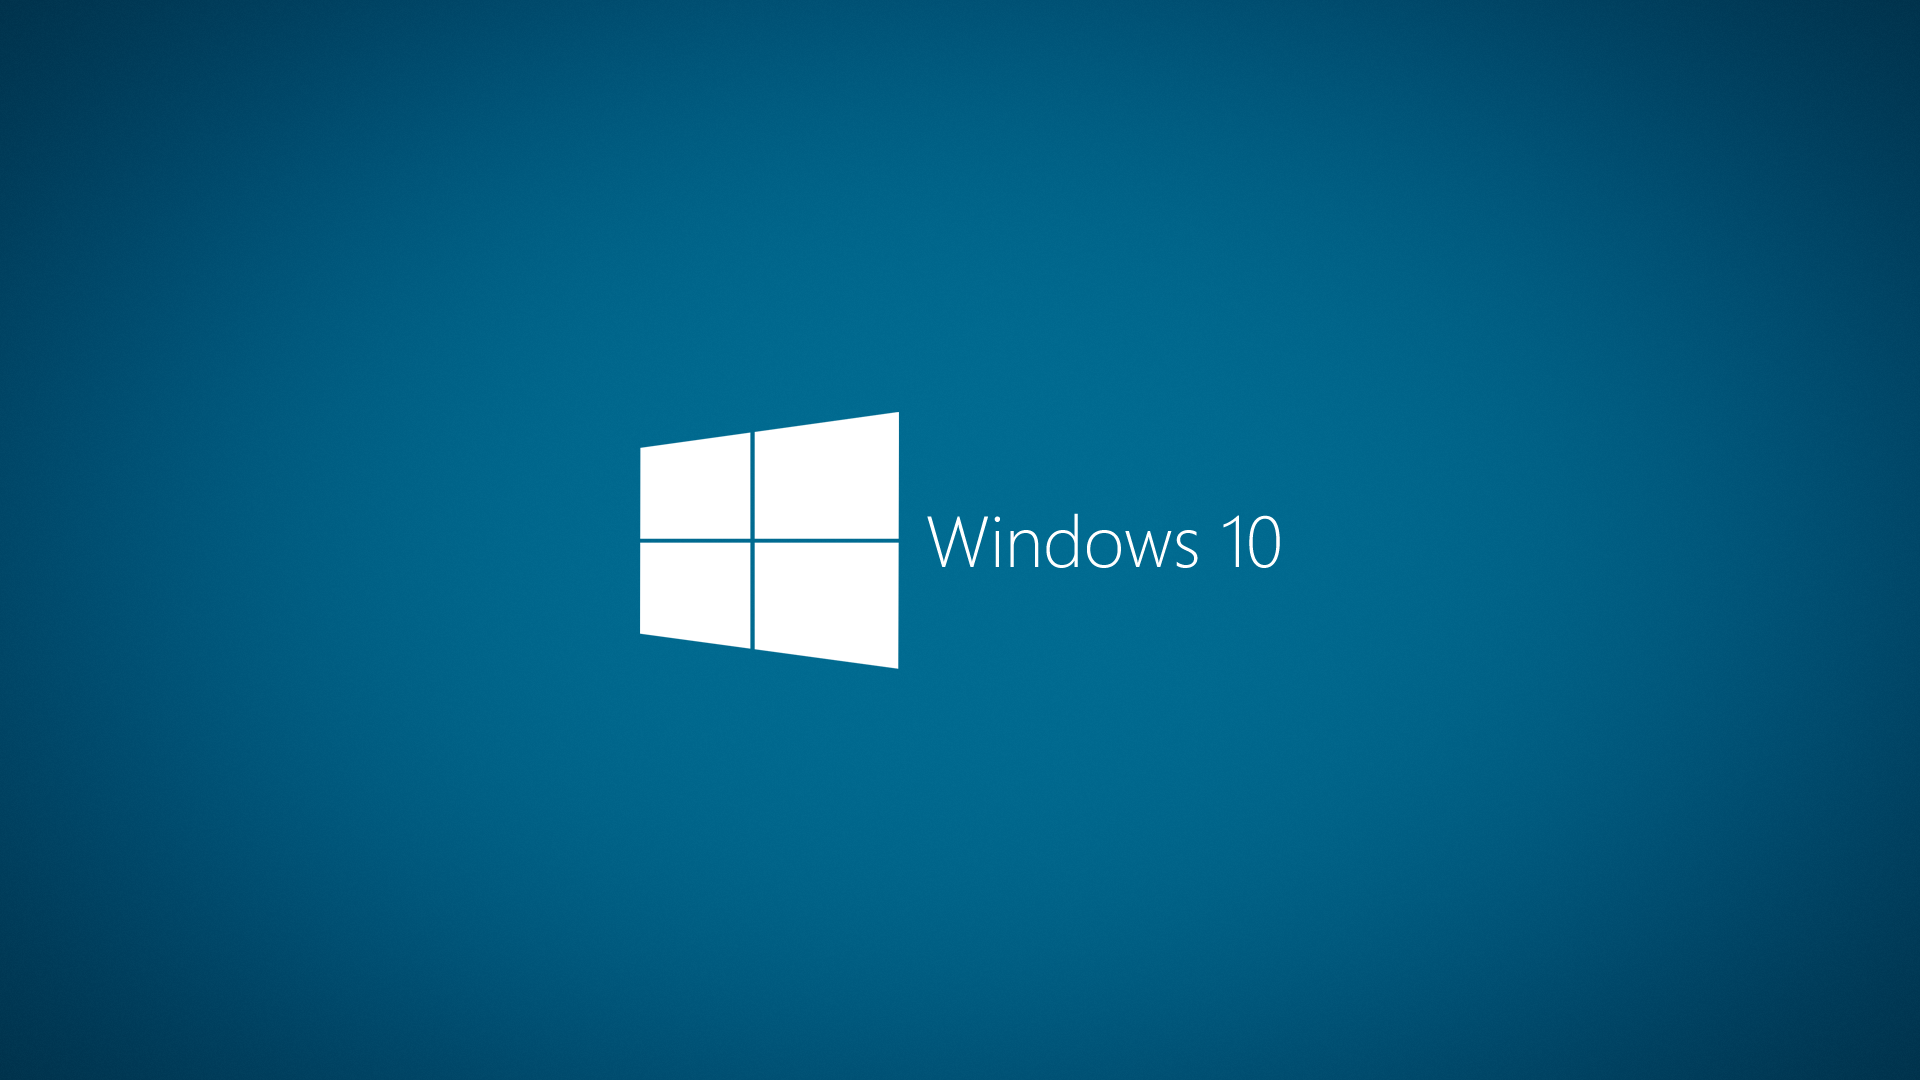 Windows 10 backgrounds pictures images for Top wallpaper brands